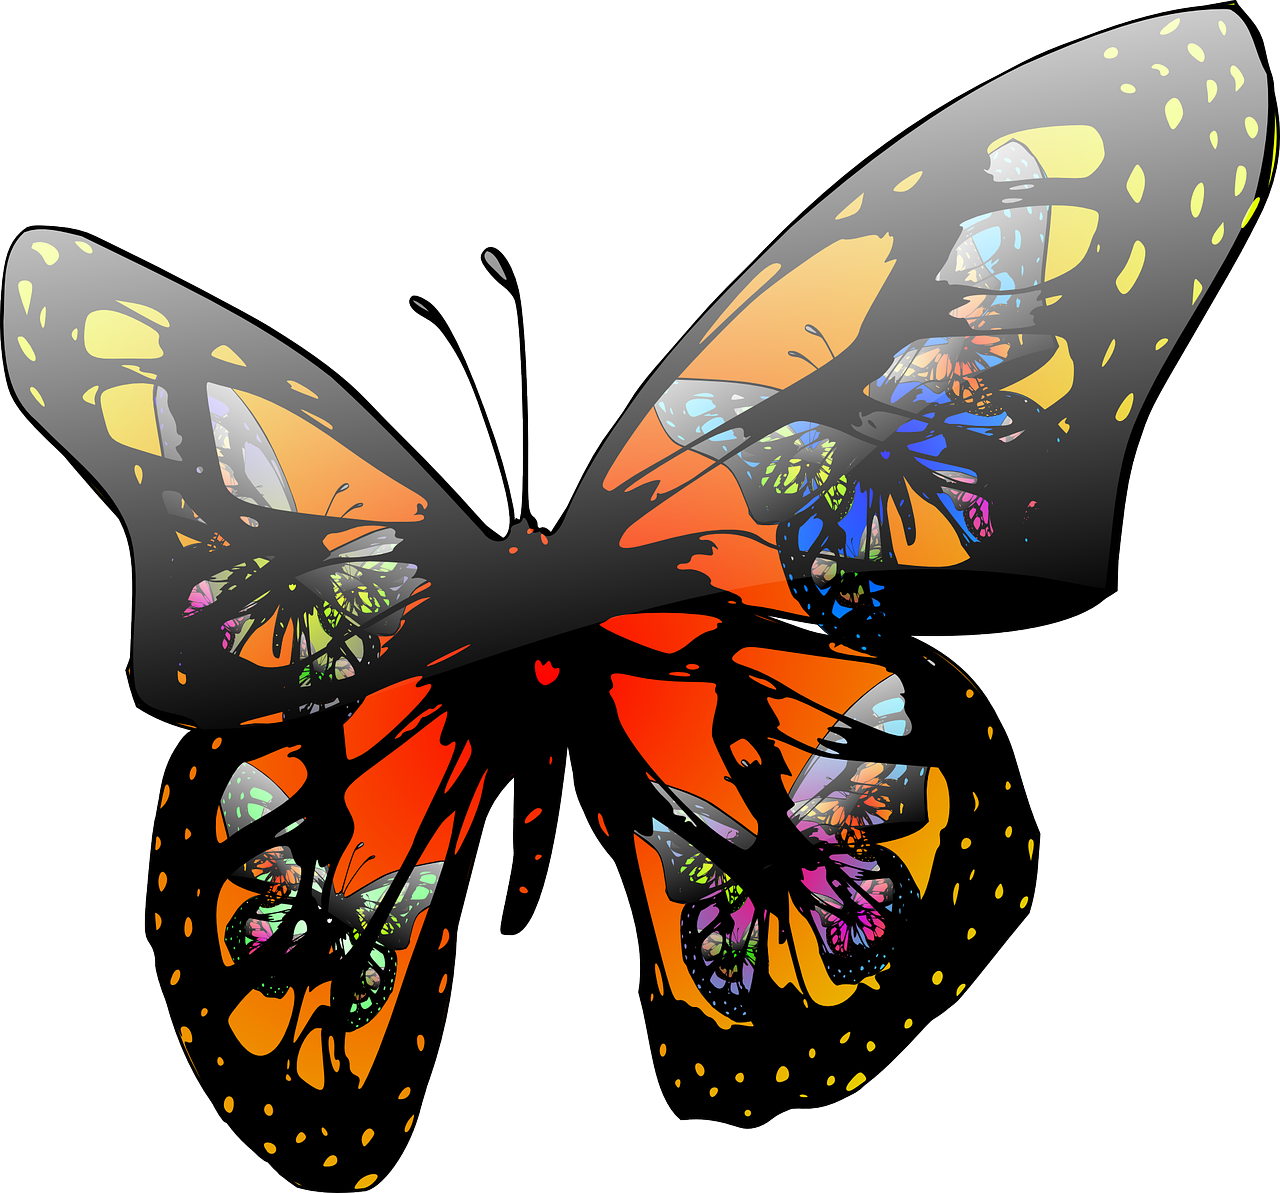 Home bright futures. Preschool clipart butterfly